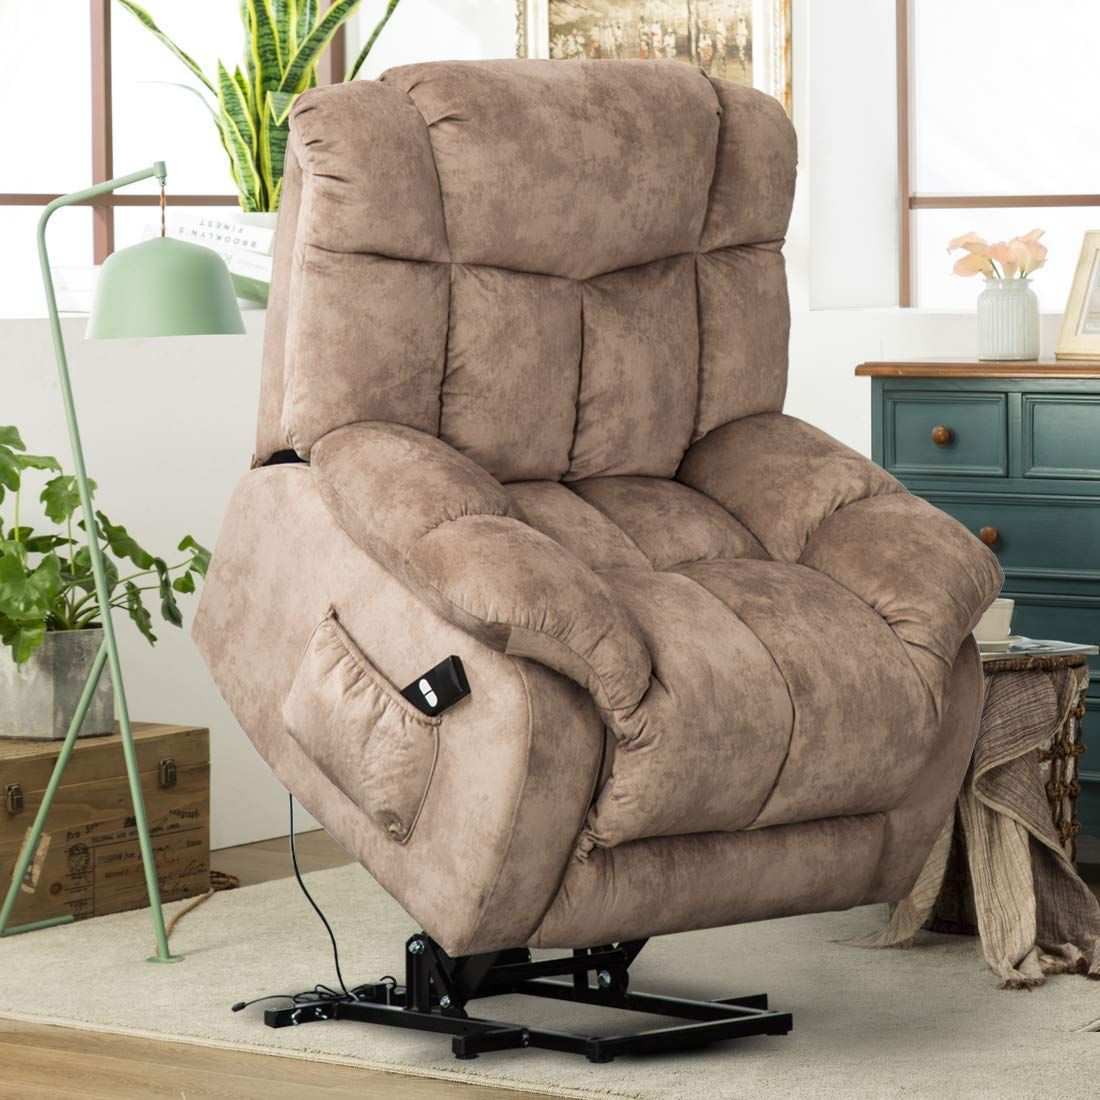 Heavy Duty Living Room Furniture in 4  Recliner chair, Fabric